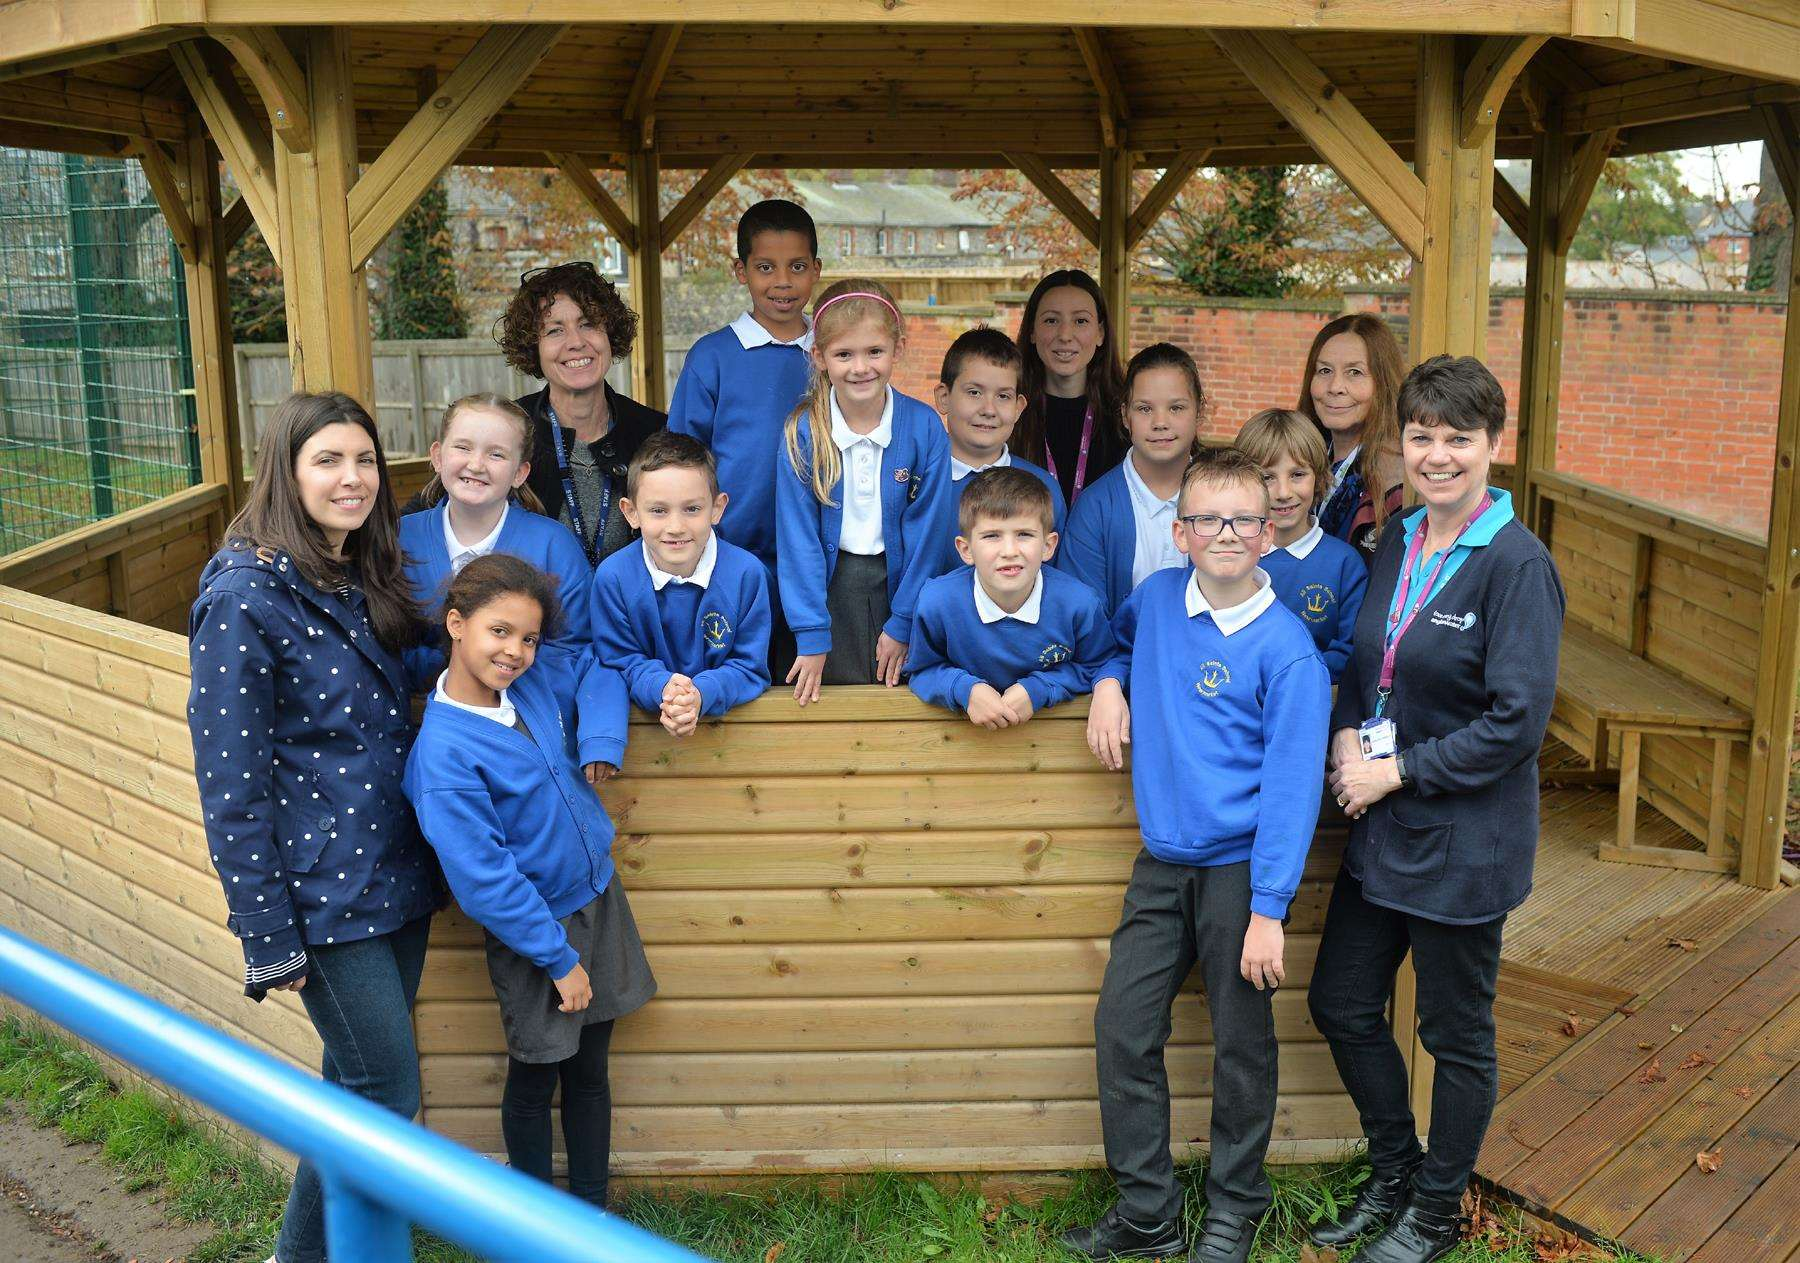 All Saints' Primary School pupils in their new outdoor-classroom with headteacher Jane Trampnow and Laura Wing and Caroline Donnelly from Anglian Water